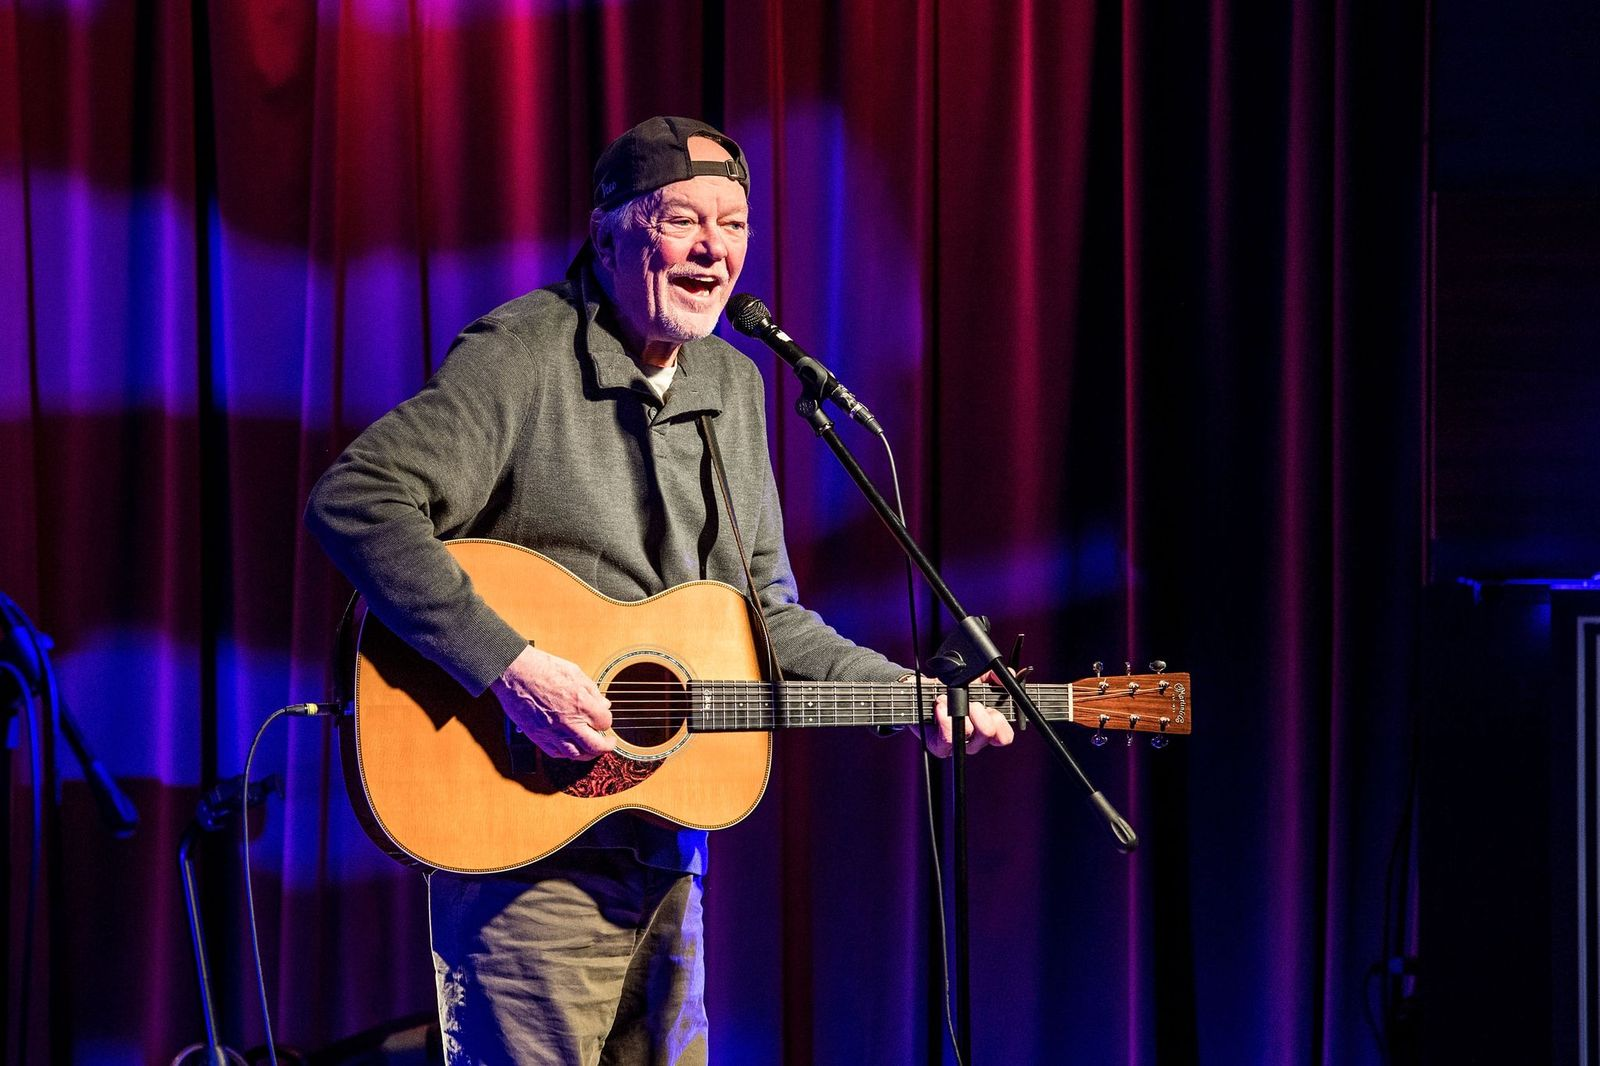 Rusty Young performs at The GRAMMY Museum on February 8, 2018 | Getty Images